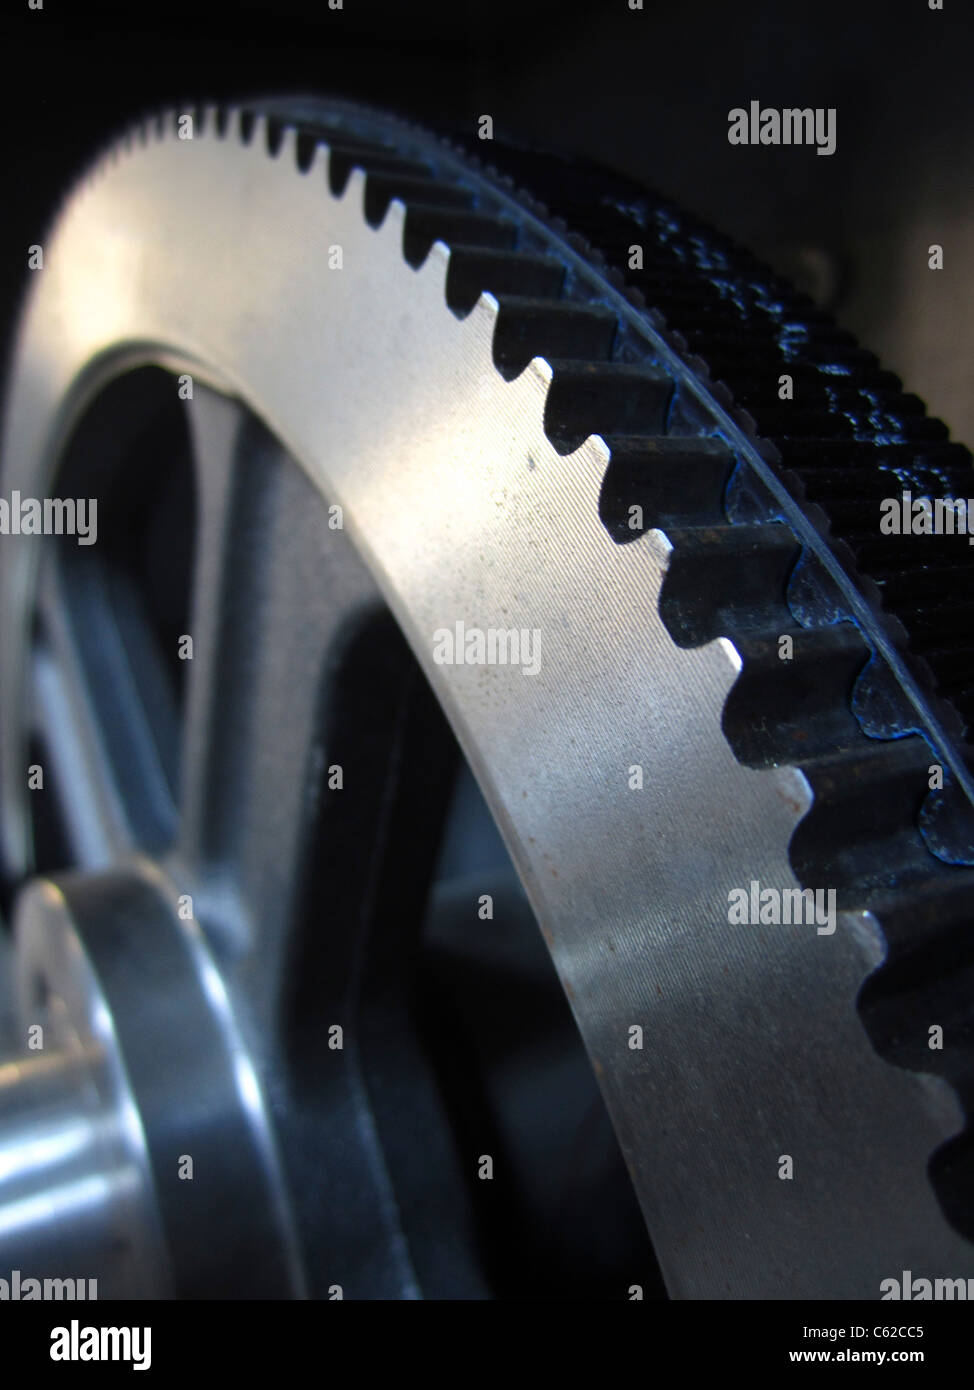 Part of gears with a toothed belt, industry equipment - Stock Image